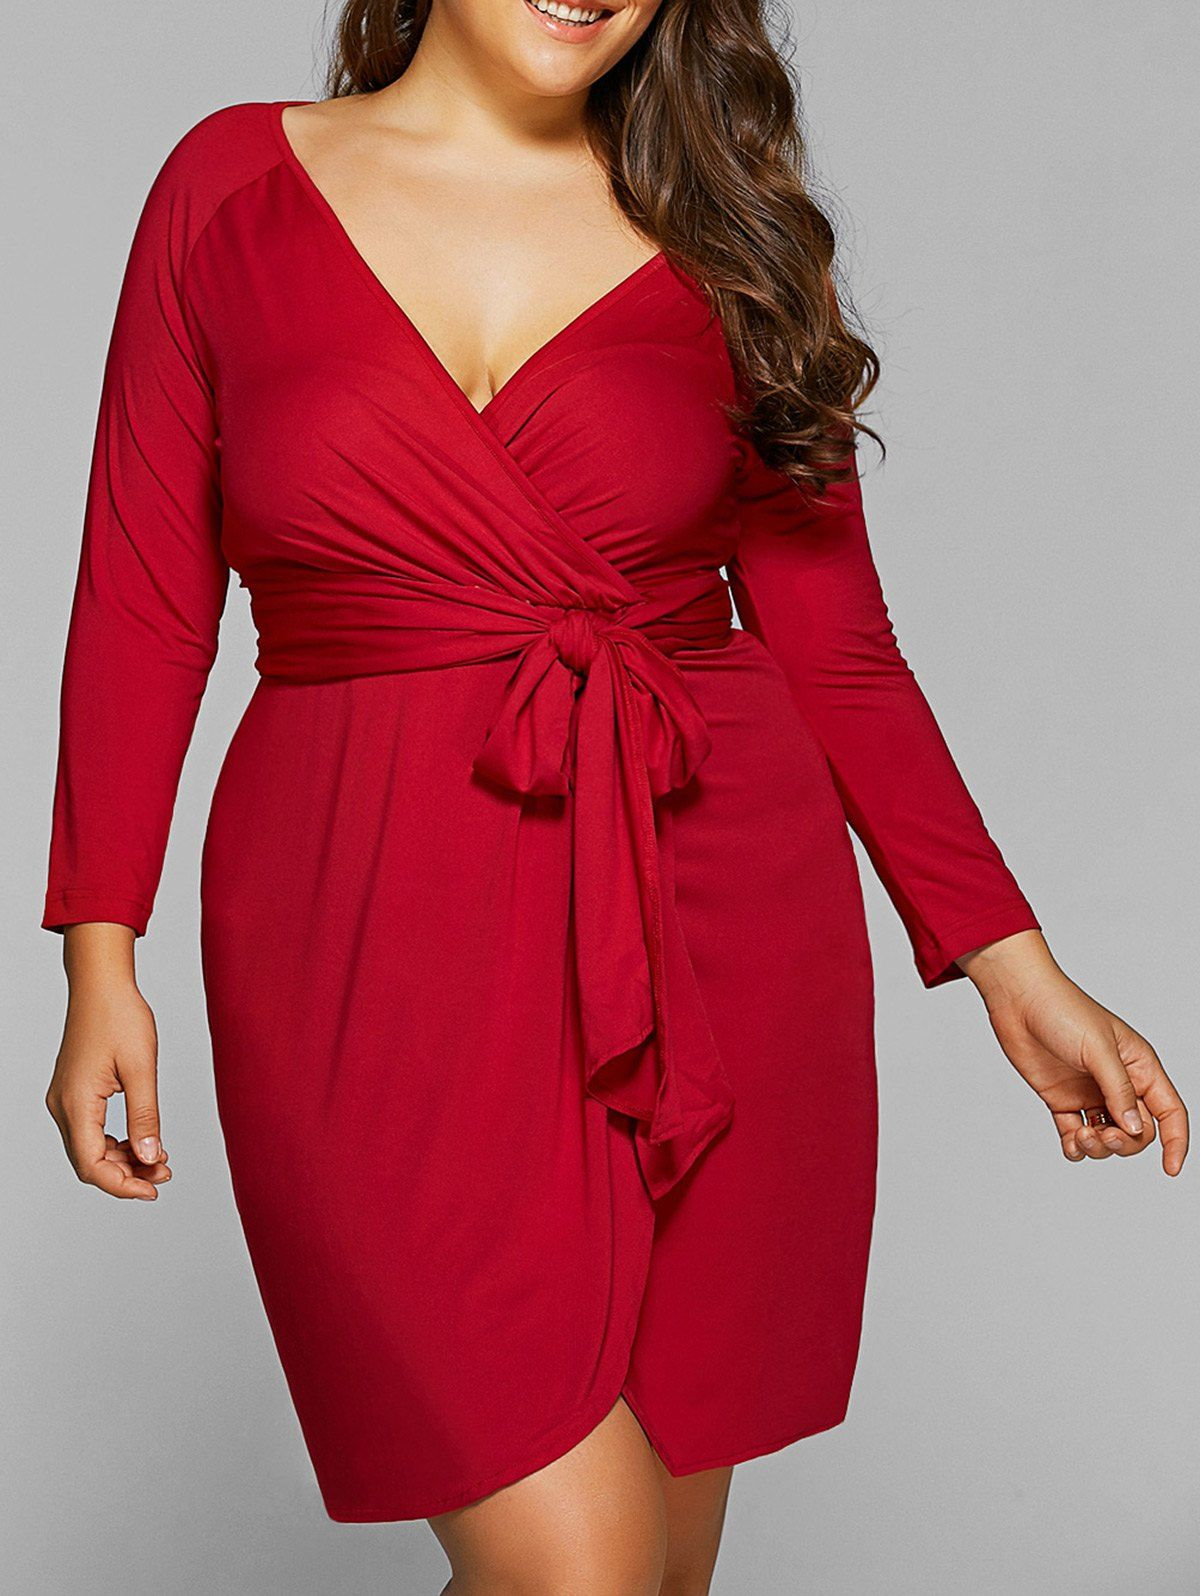 Red lace dress plus size  Long Sleeve Plus Size Knot Wrap Dress  Wrap dresses Wraps and Autumn